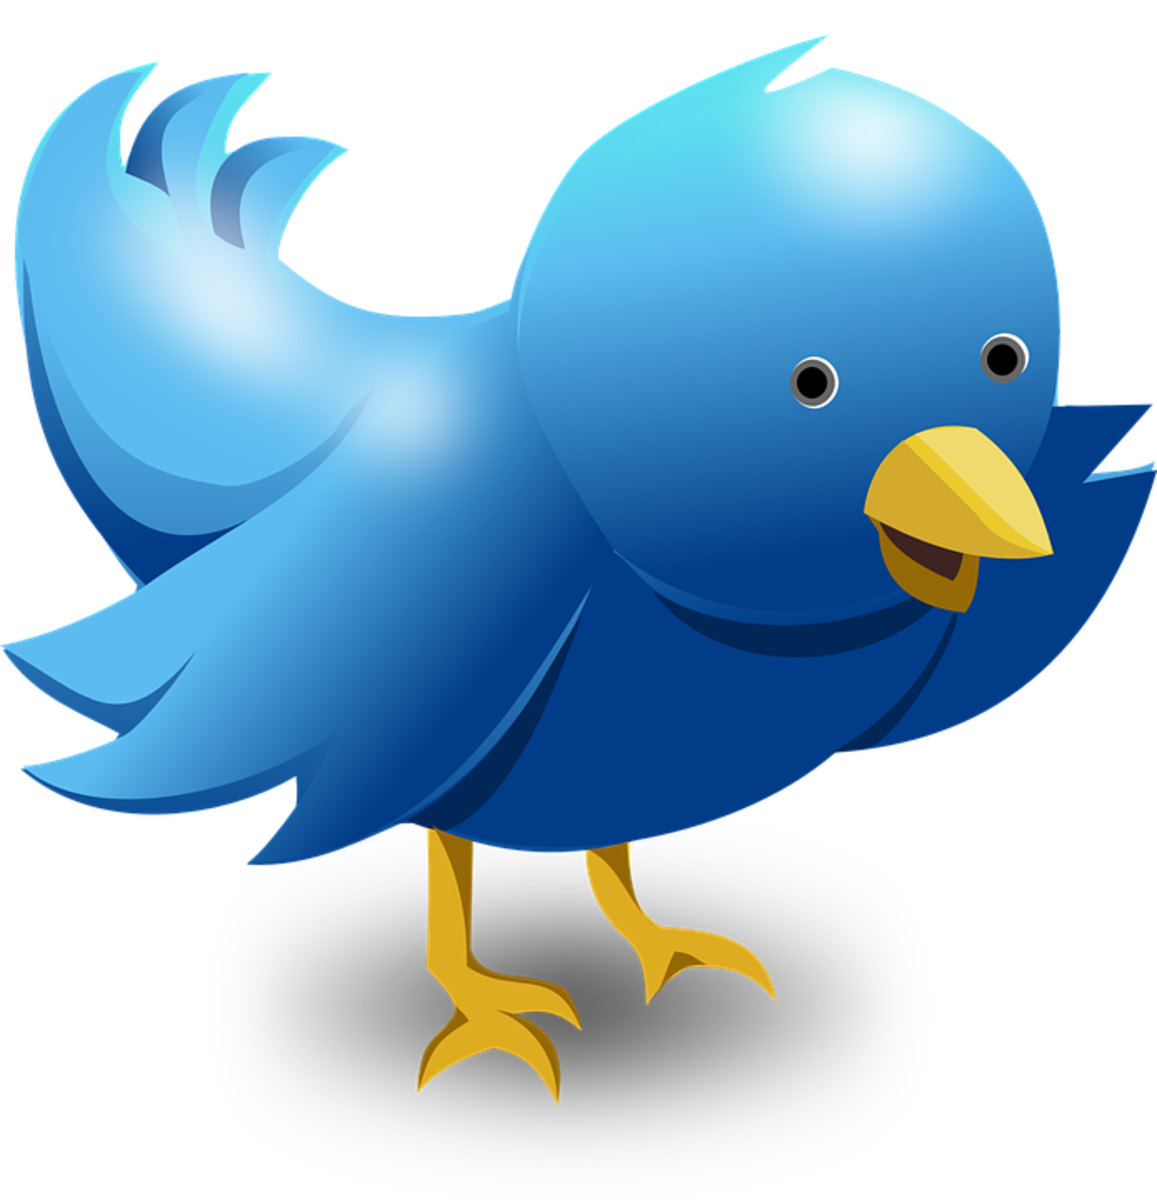 Are you part of the conversation? The Twitter logo is a bluebird.